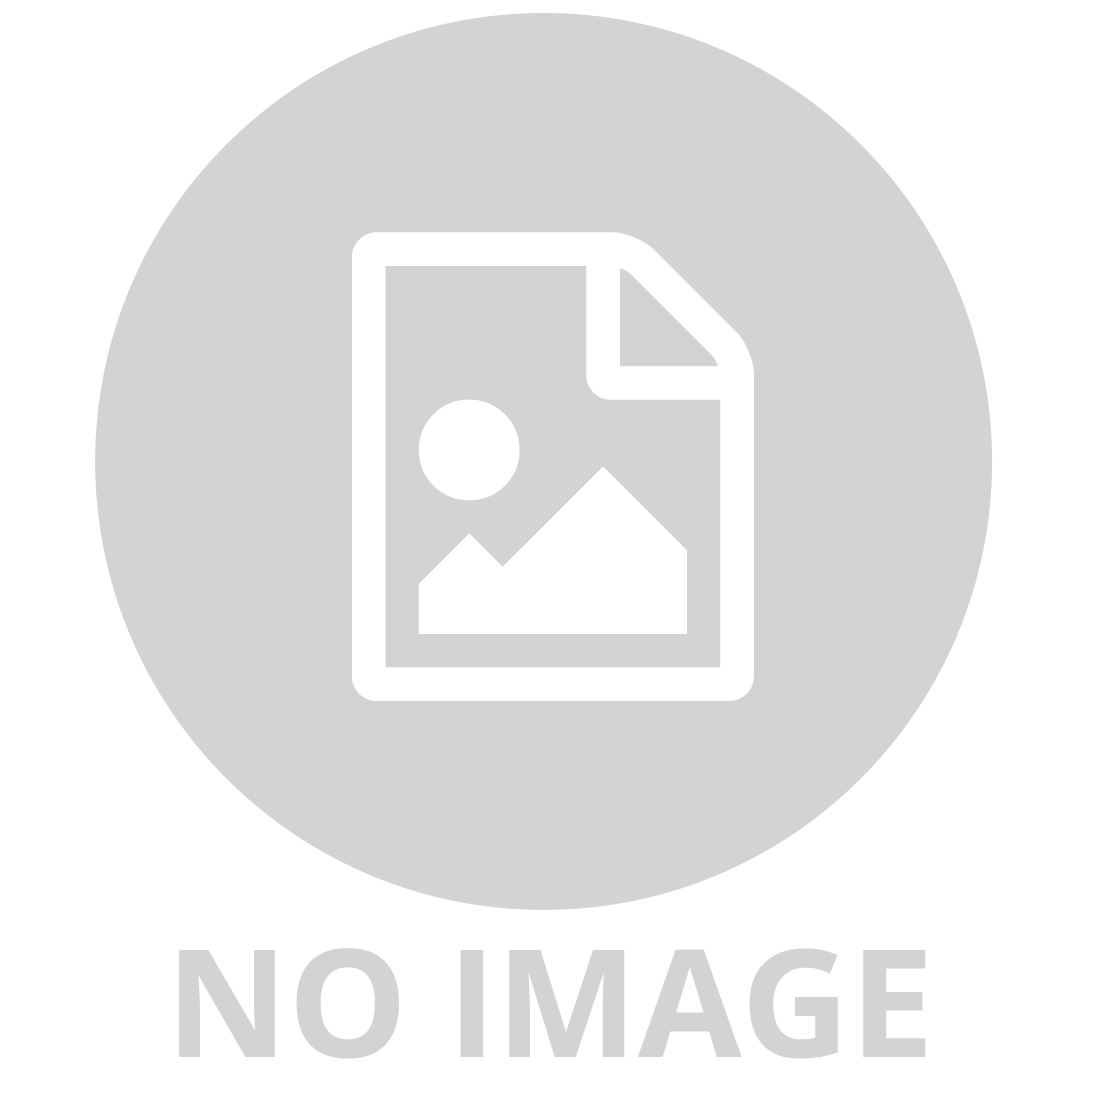 TRIKE STAR 3 IN 1 GRAND COMFORT TRICYCLE RED